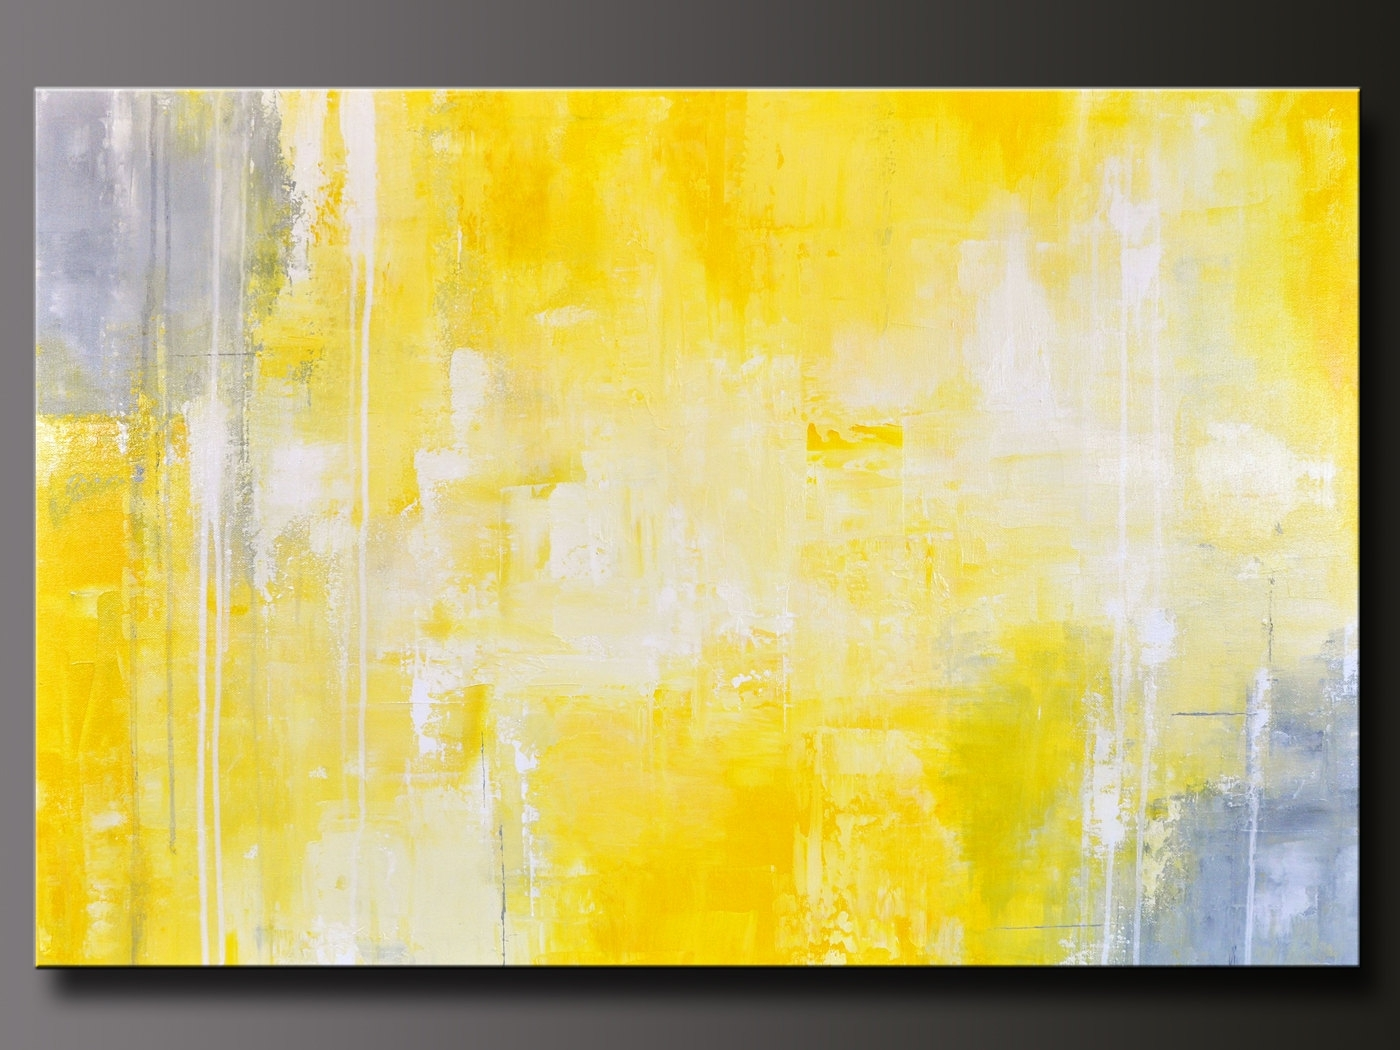 Wall Art Designs: Yellow And Gray Wall Art Diy Wall Art Washington Pertaining To 2018 Gray Abstract Wall Art (View 18 of 20)